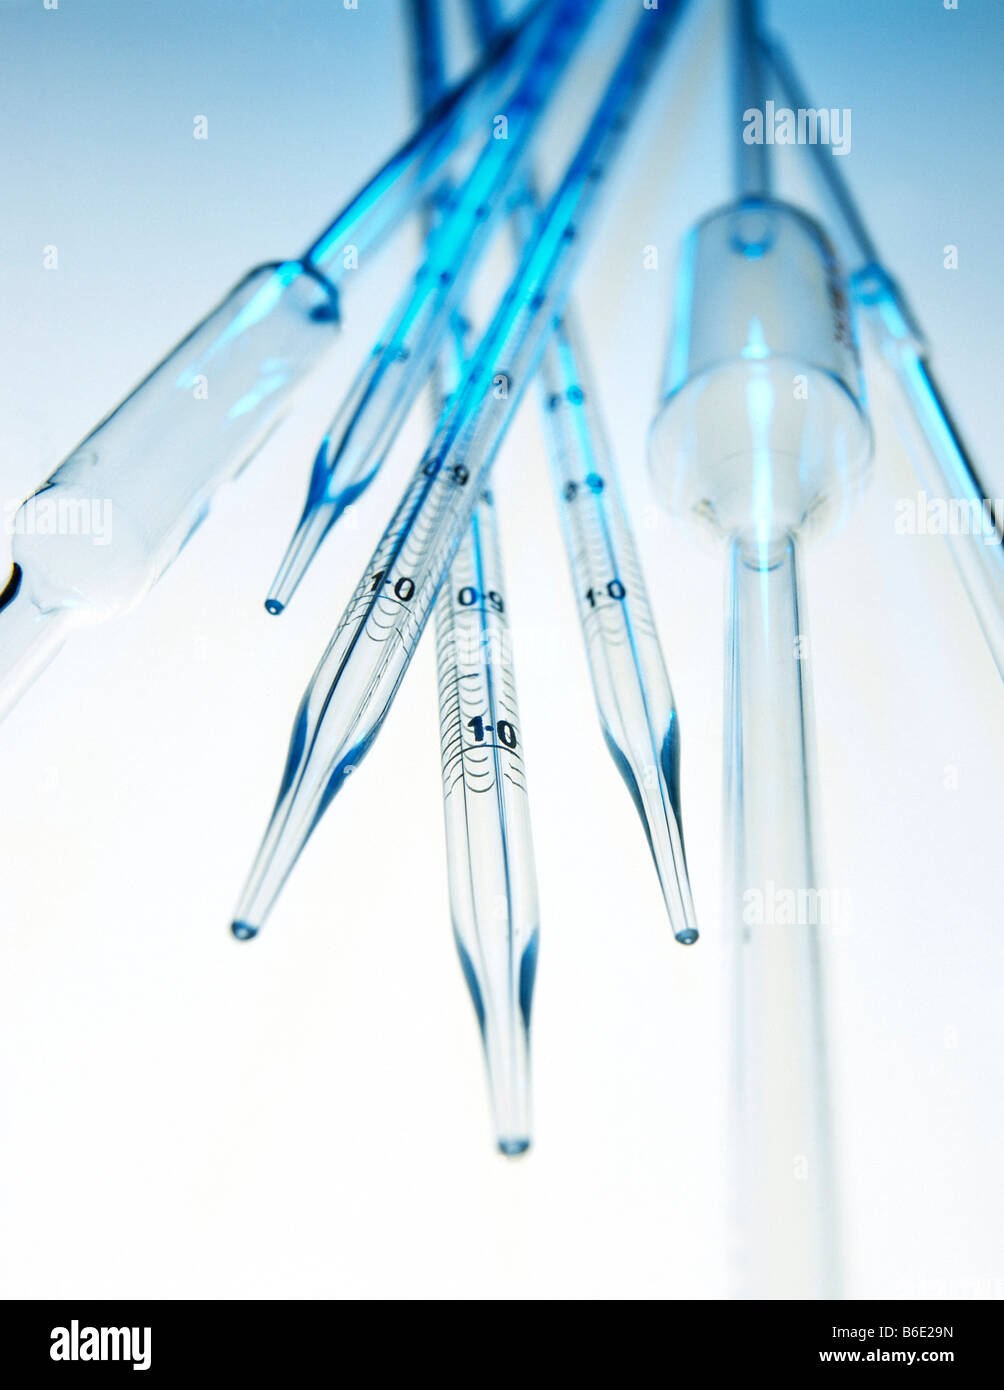 Glass pipettes. Standardised volume pipettes(with bulbs). These are used to measure exact volumes. - Stock Image